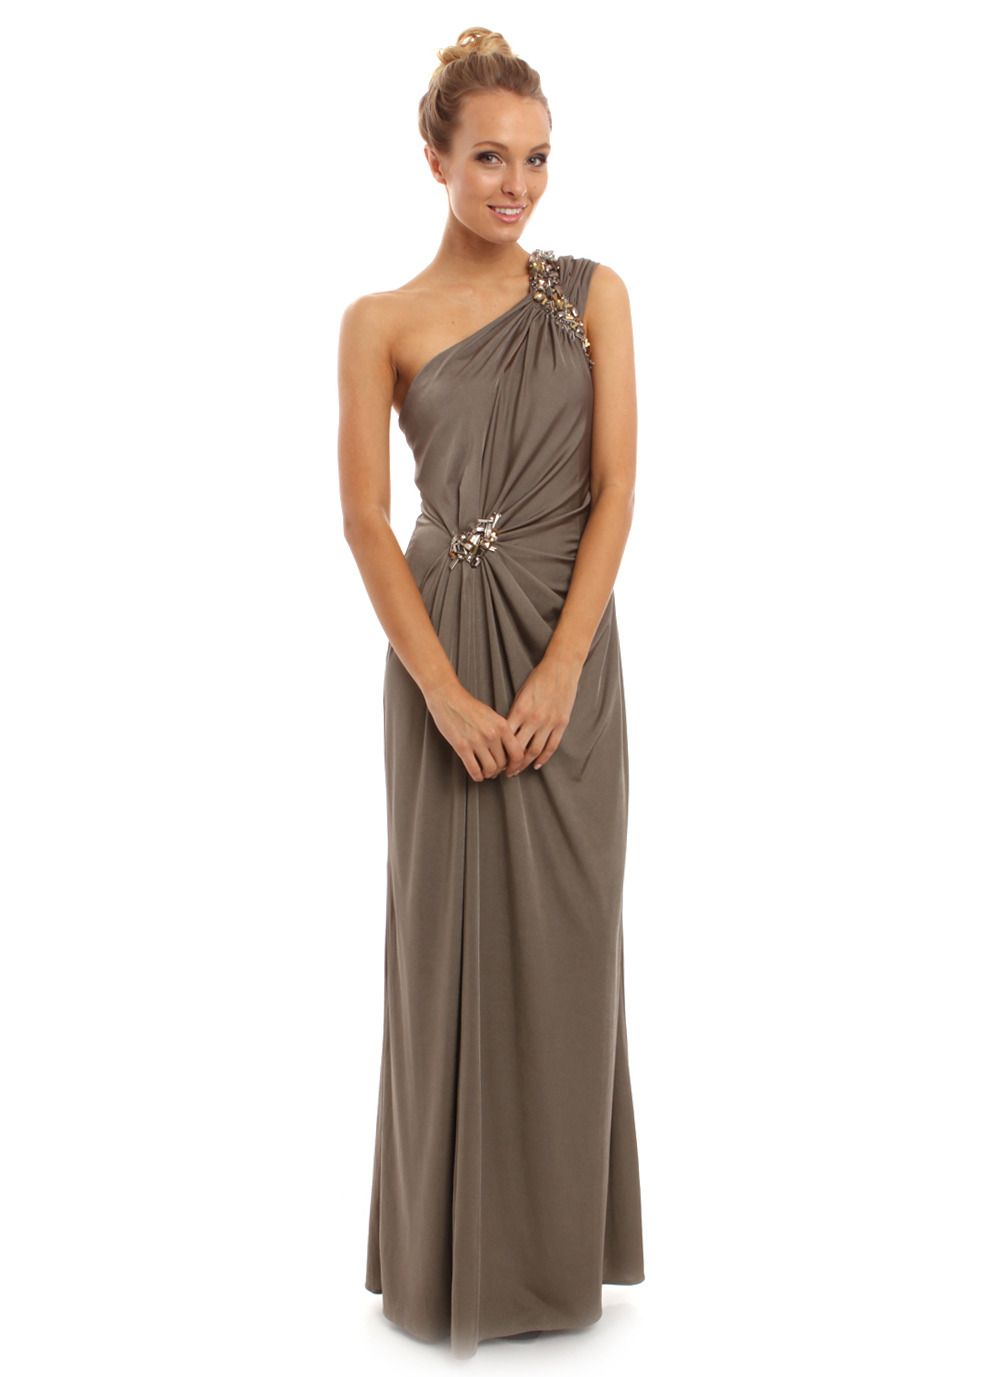 Beautiful grecian style gown. | Style | Pinterest | Gowns, Dress ...